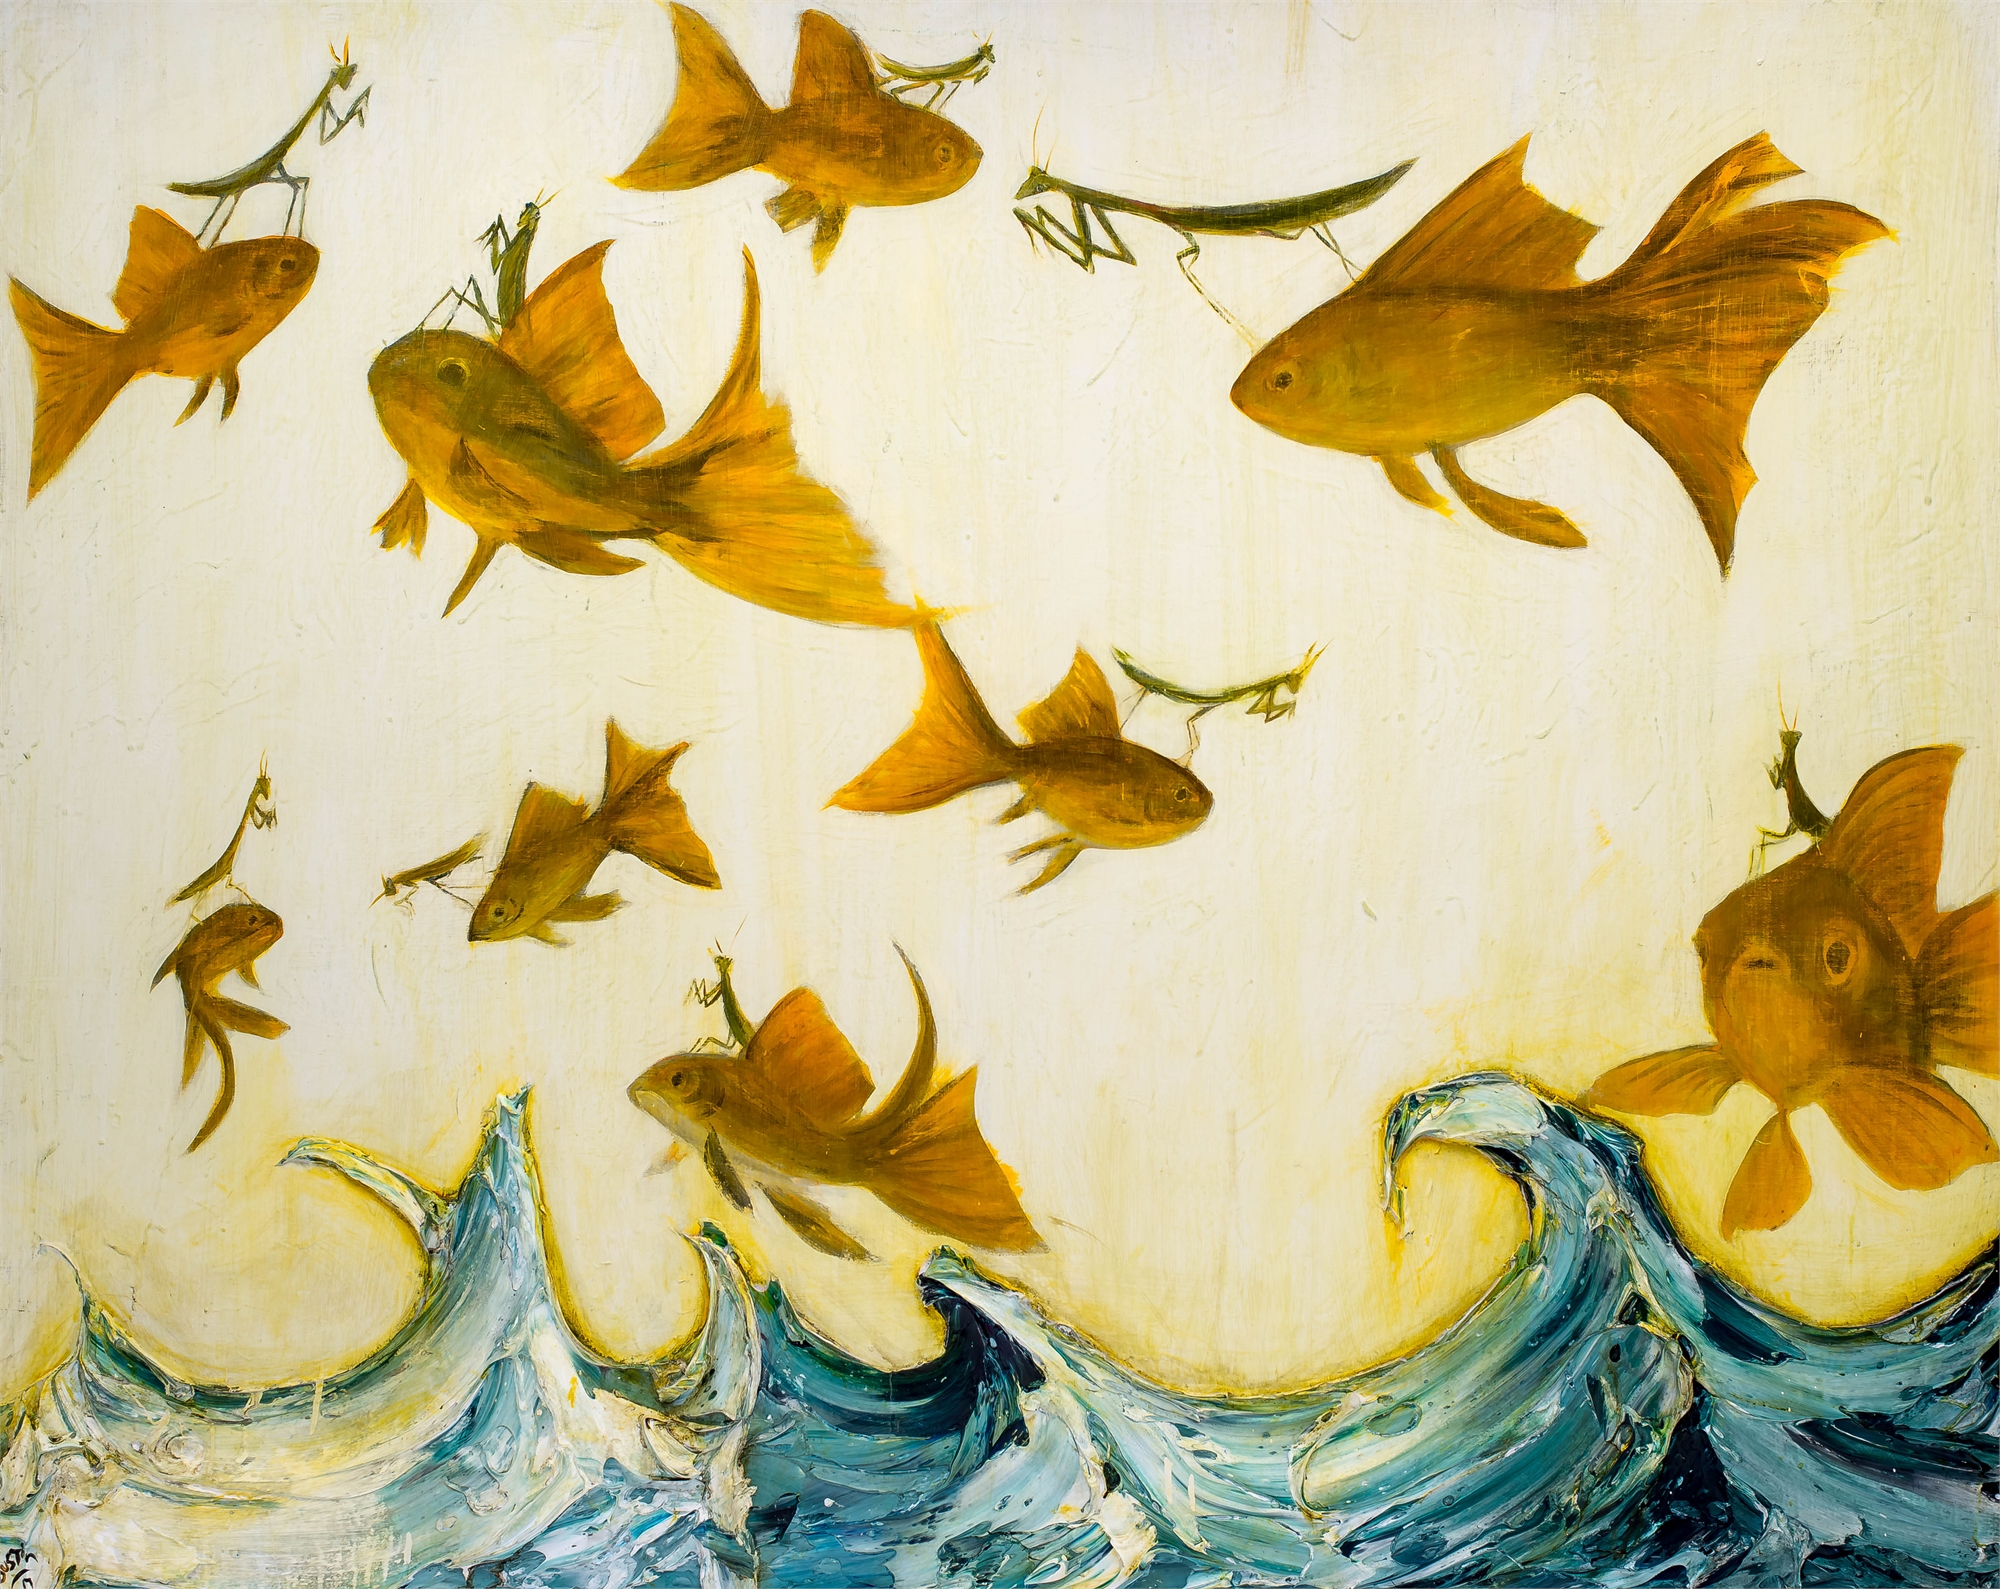 Gold Fish Mantises War by JUSTIN GAFFREY